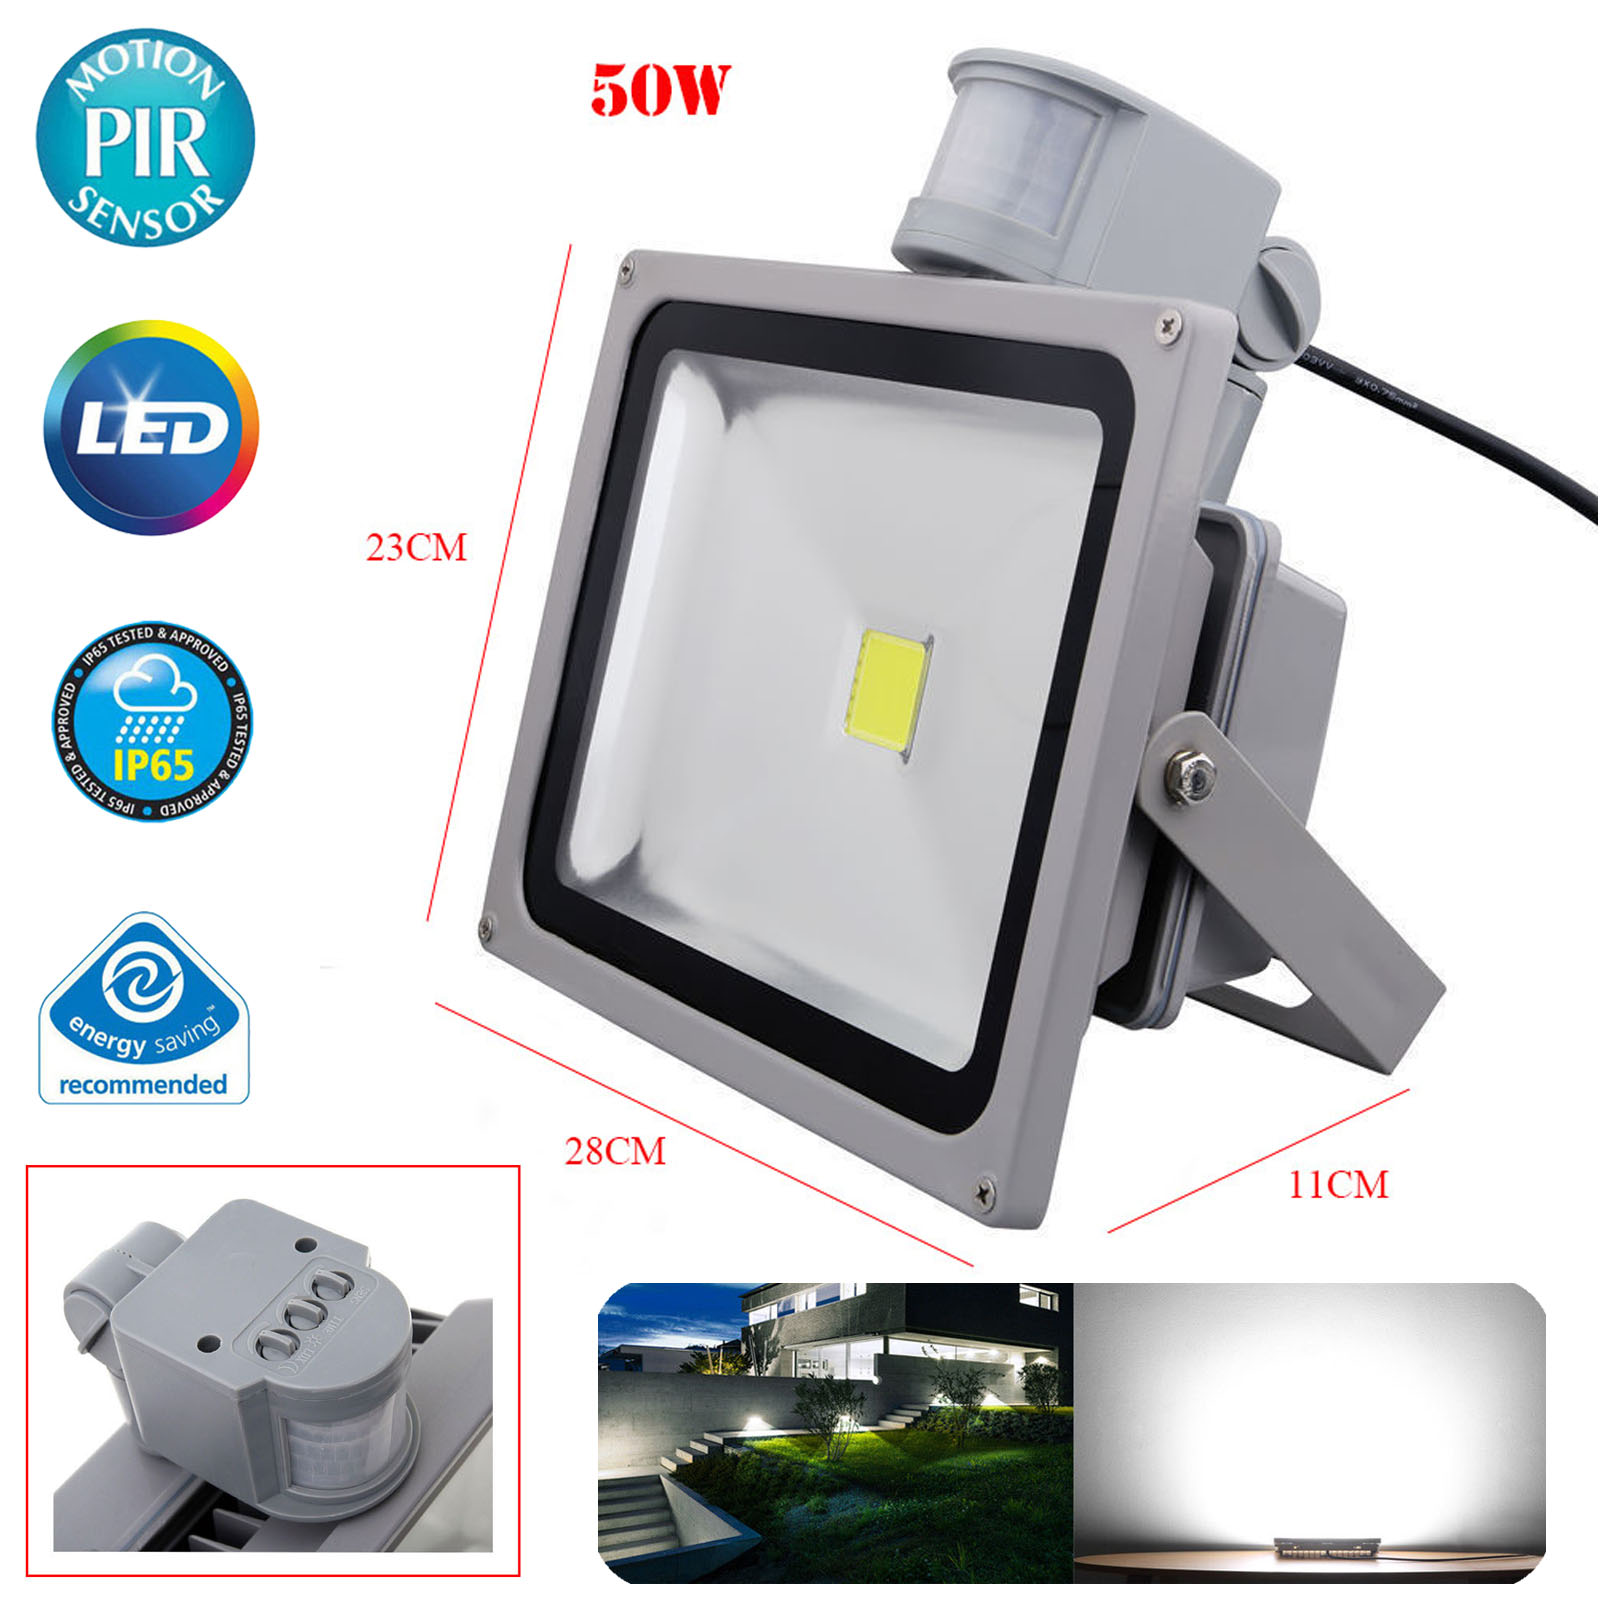 Led Pir Motion Sensor Security Outside Wall Light Outdoor Flood Further Alarm Wiring Diagram Also You May Like